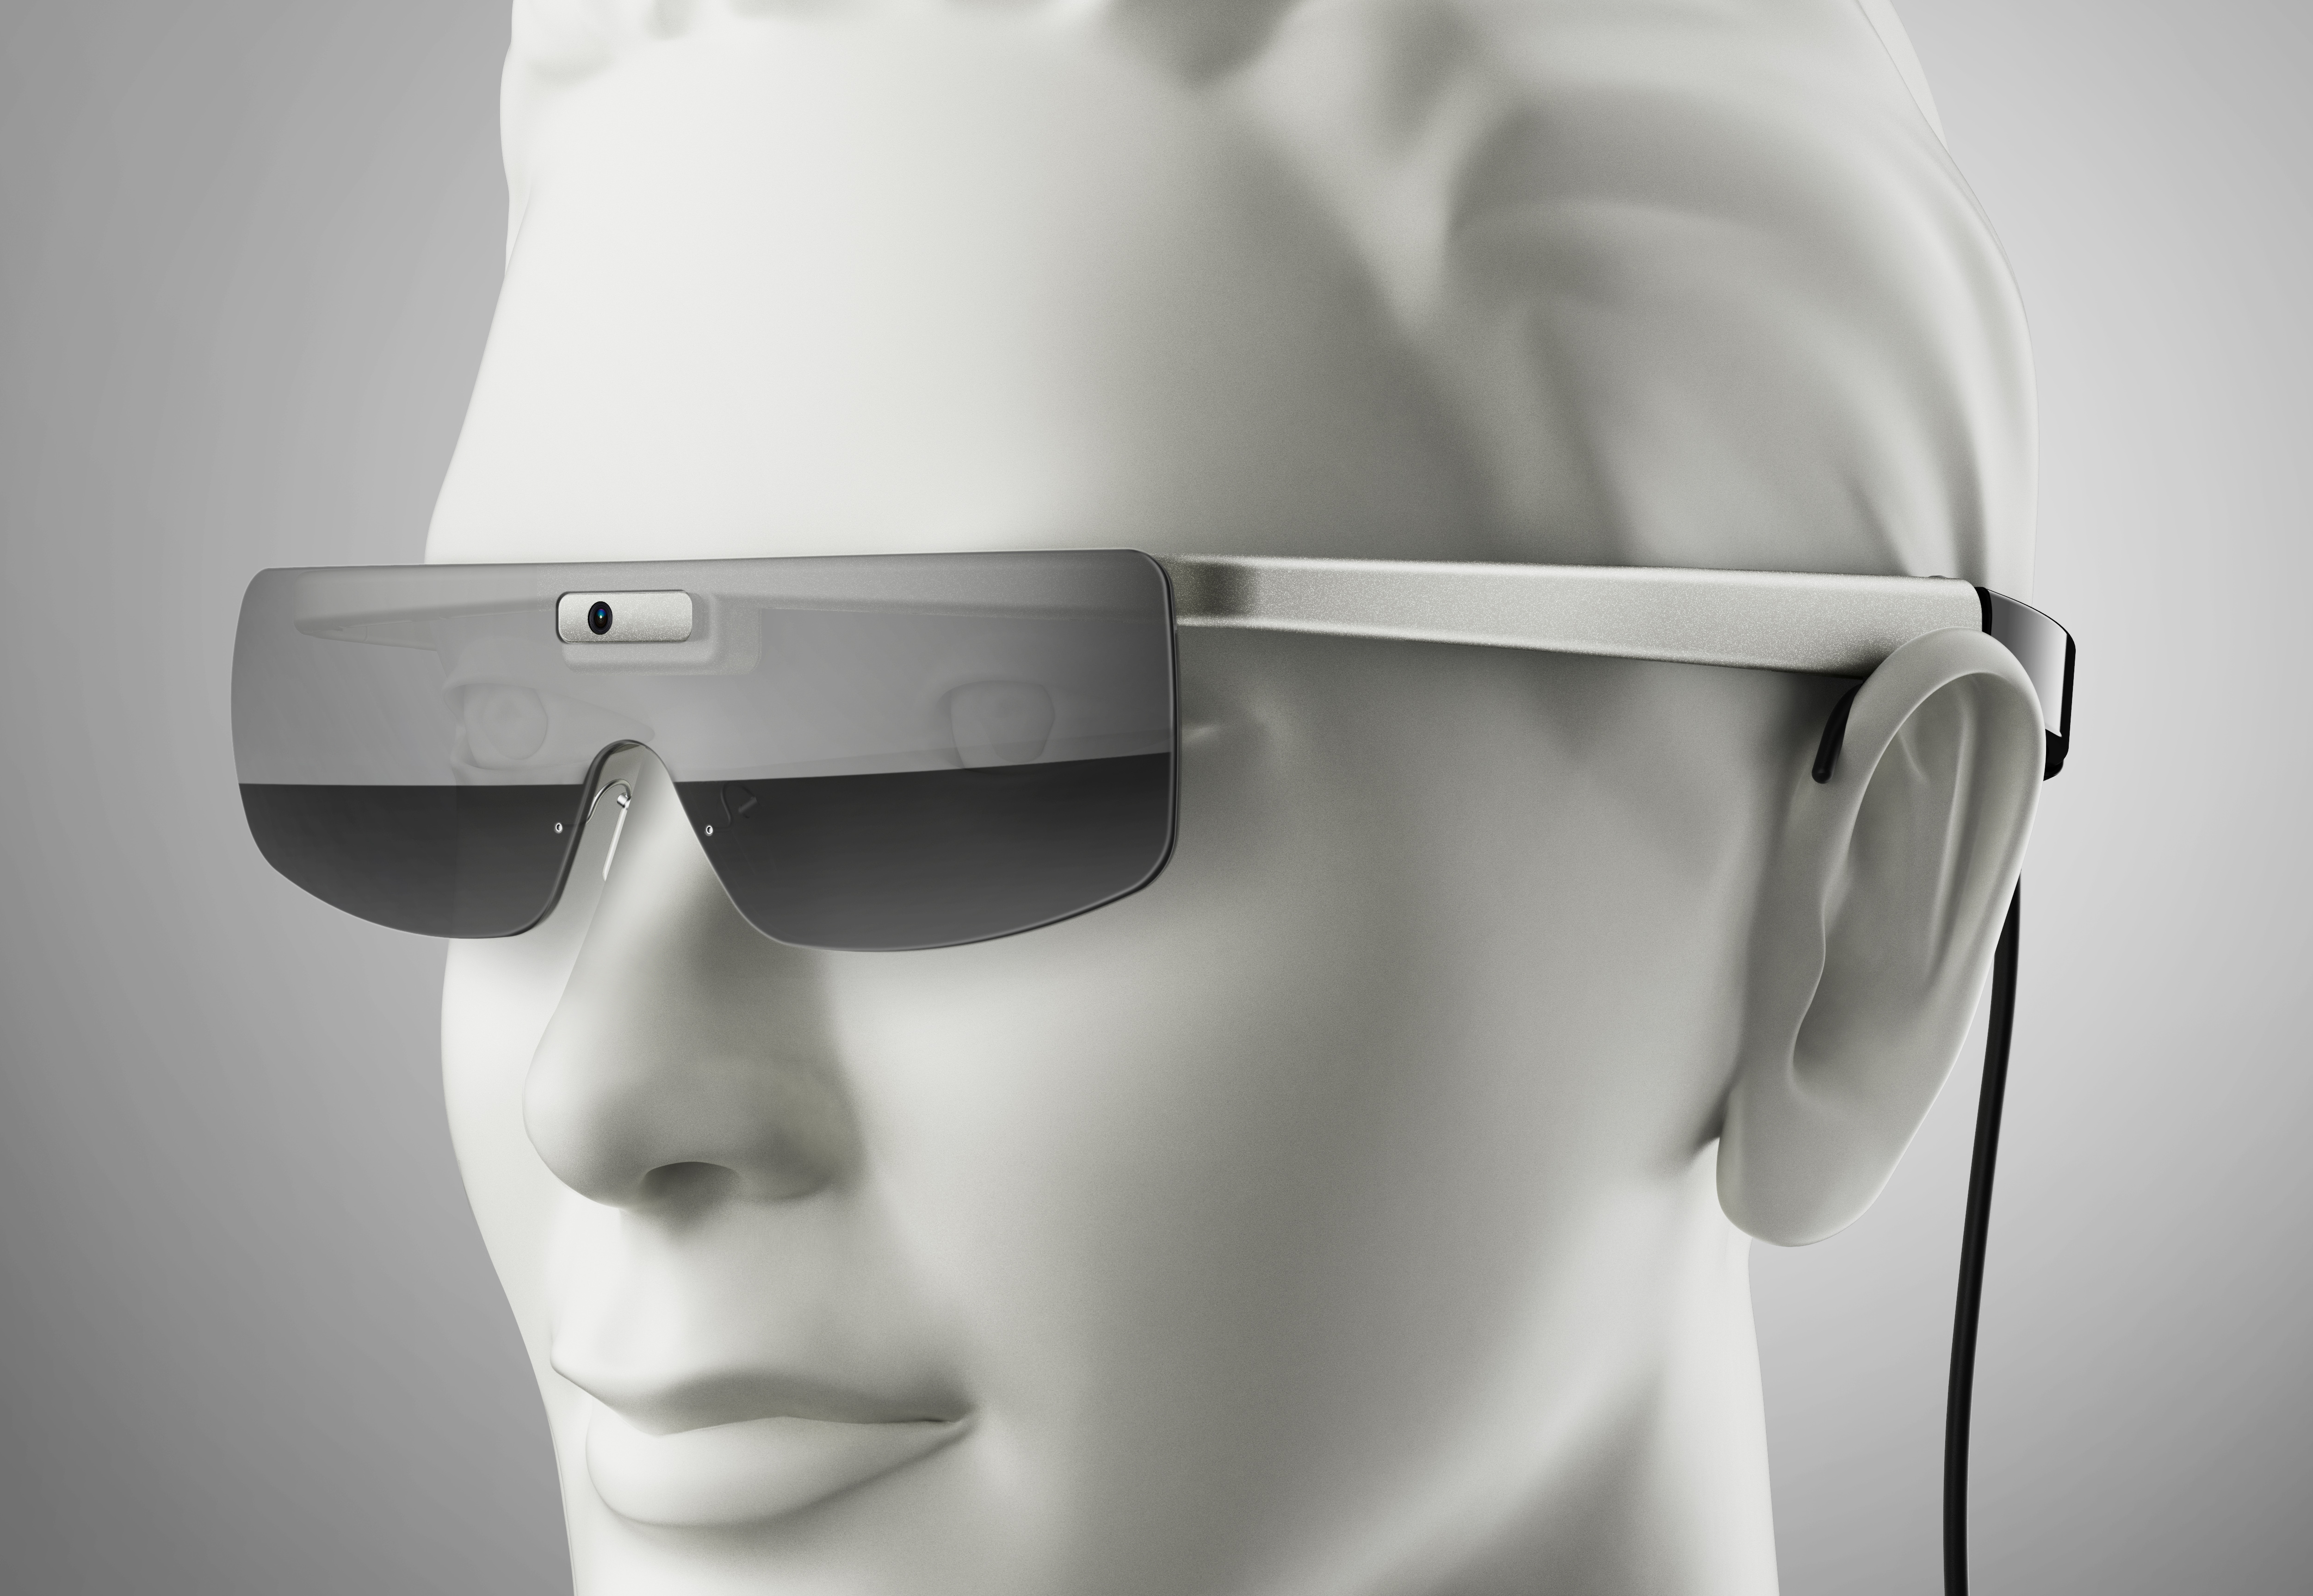 A prototype of the new bionic eyeglasses. The camera on the glasses wirelessly transmits data to the visual cortex at the back of the brain, bypassing the retina entirely.